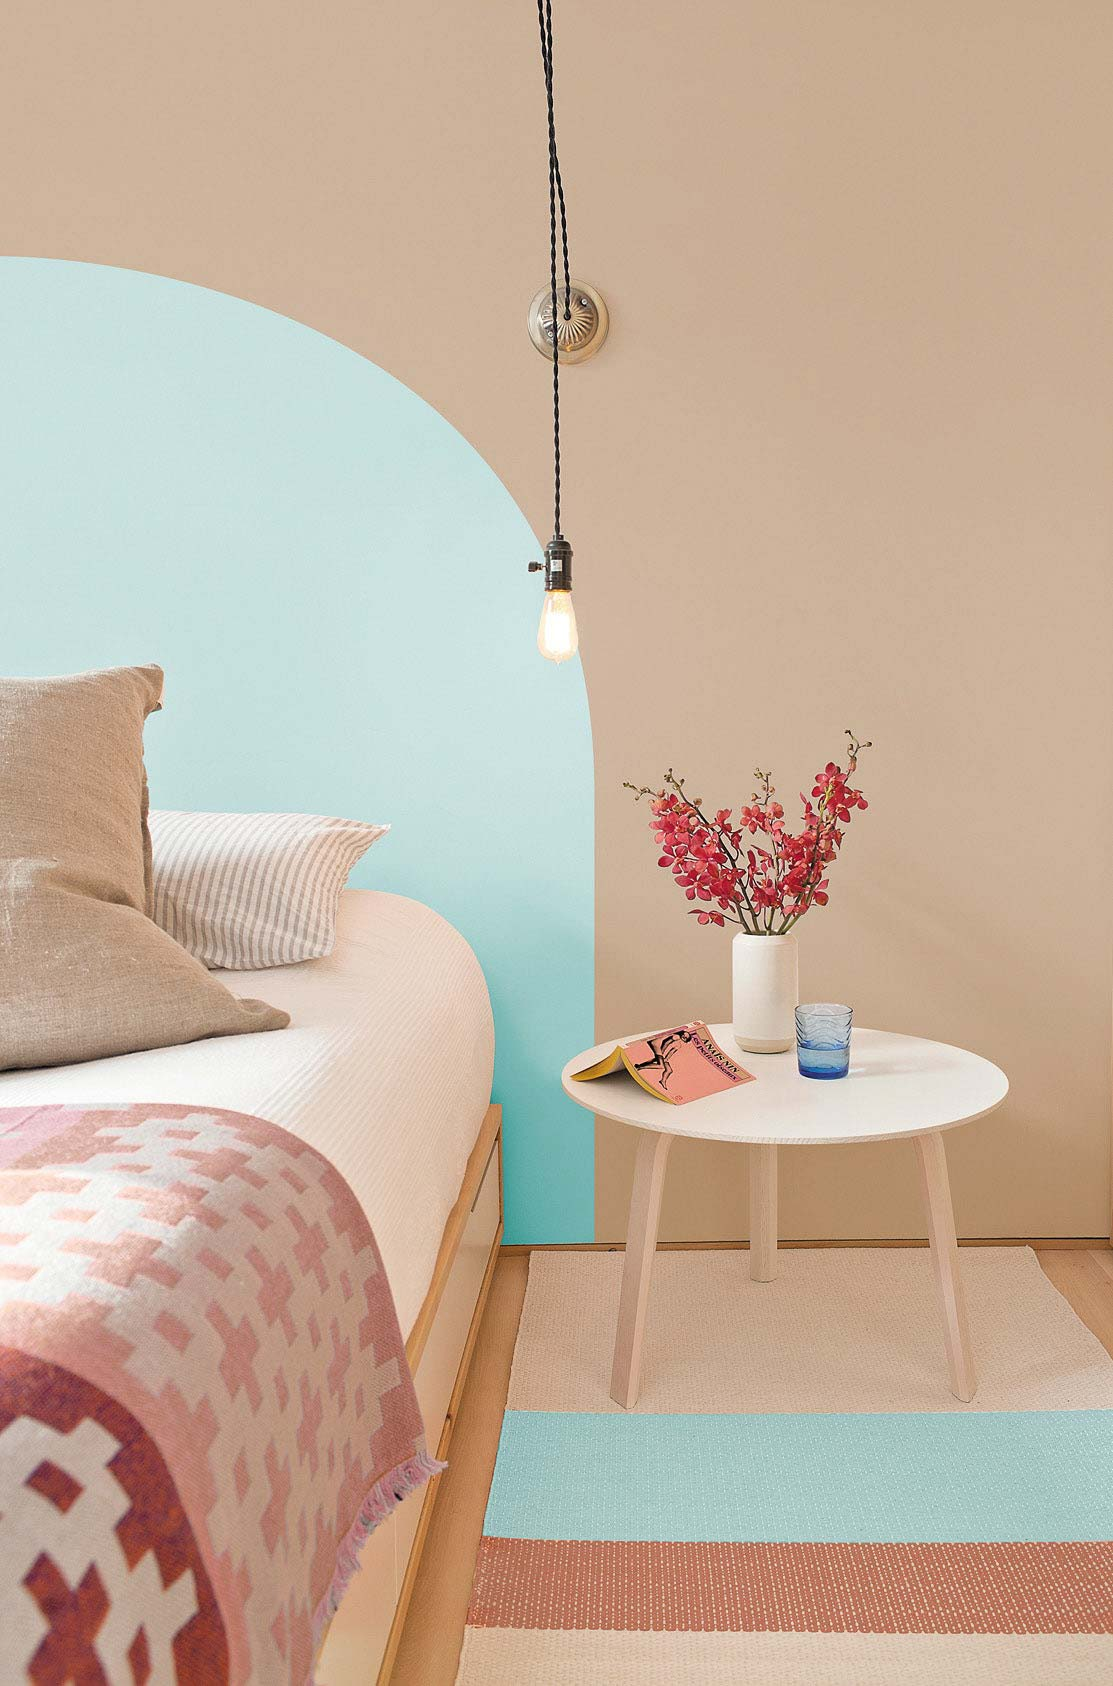 PPG Paints Colors of the Year for 2021